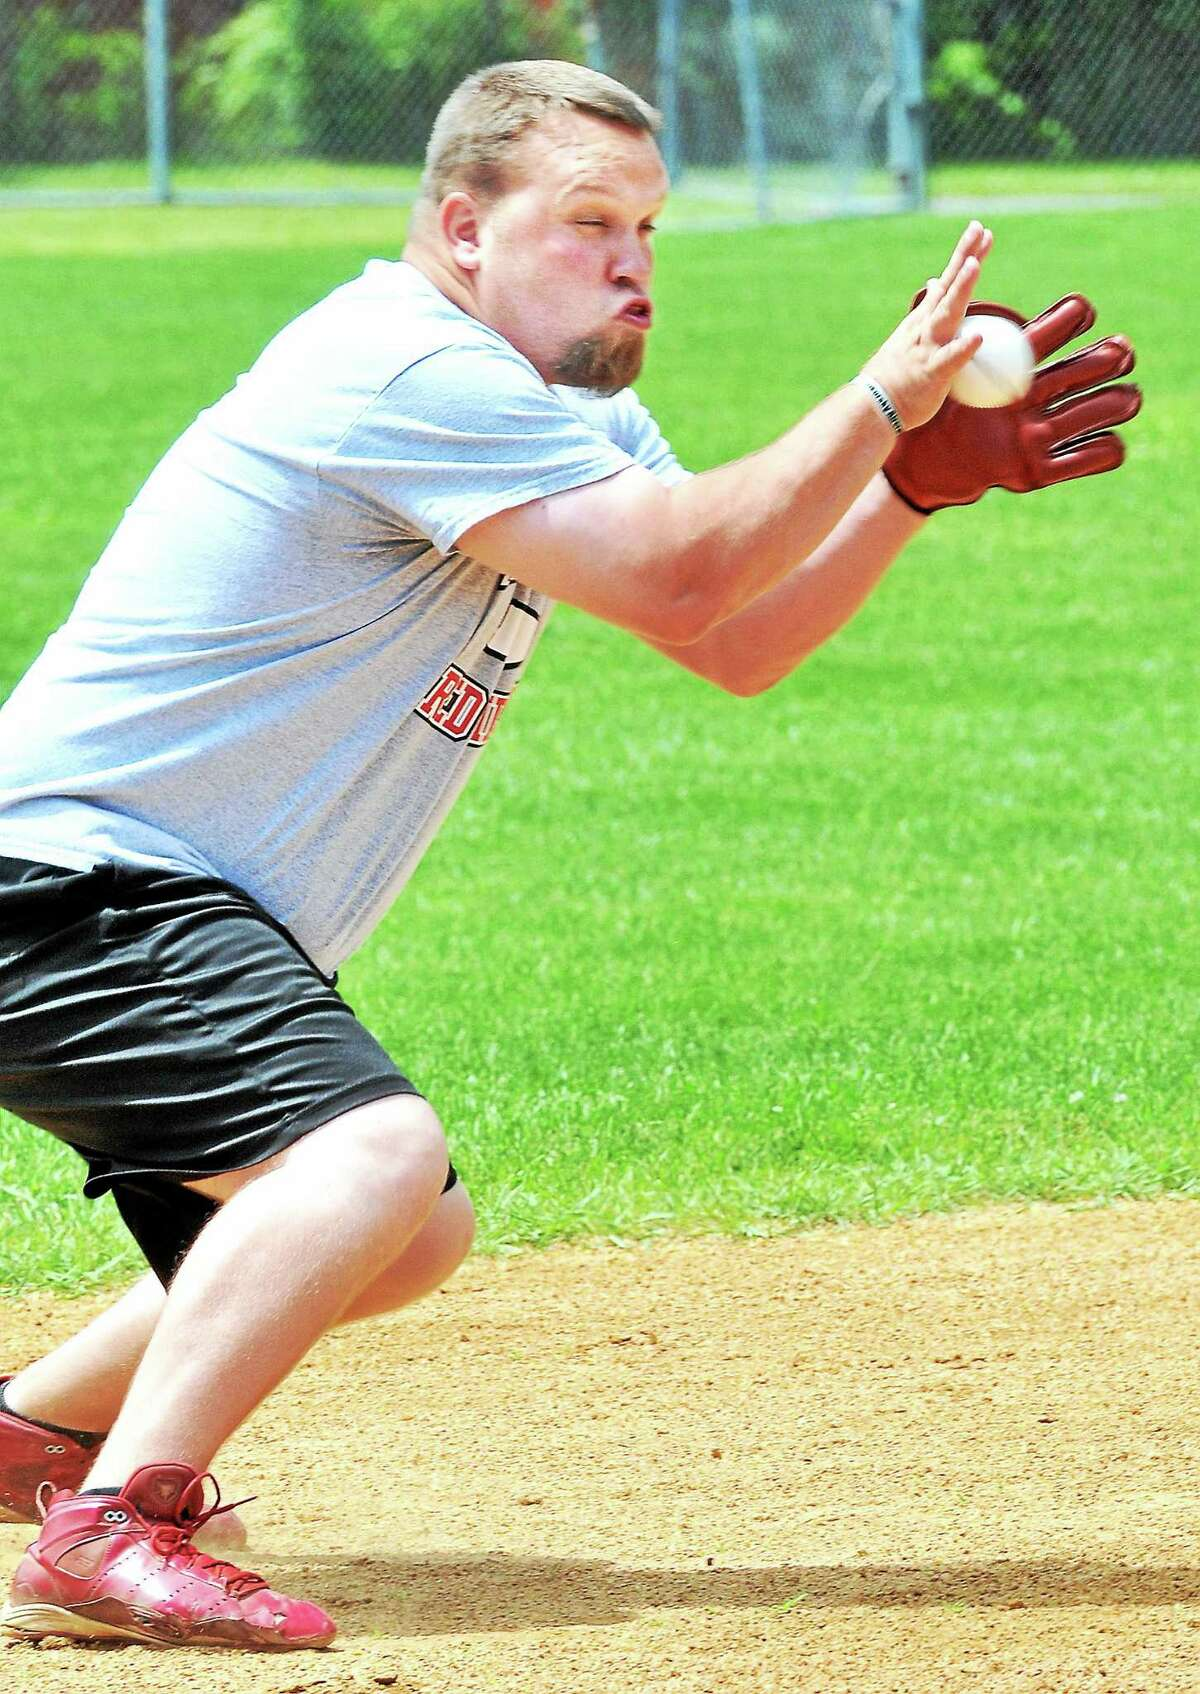 George French of Derby fields a grounder during practice using a 19th century replica baseball glove at Nolan Field in Ansonia on 6/20/2014.